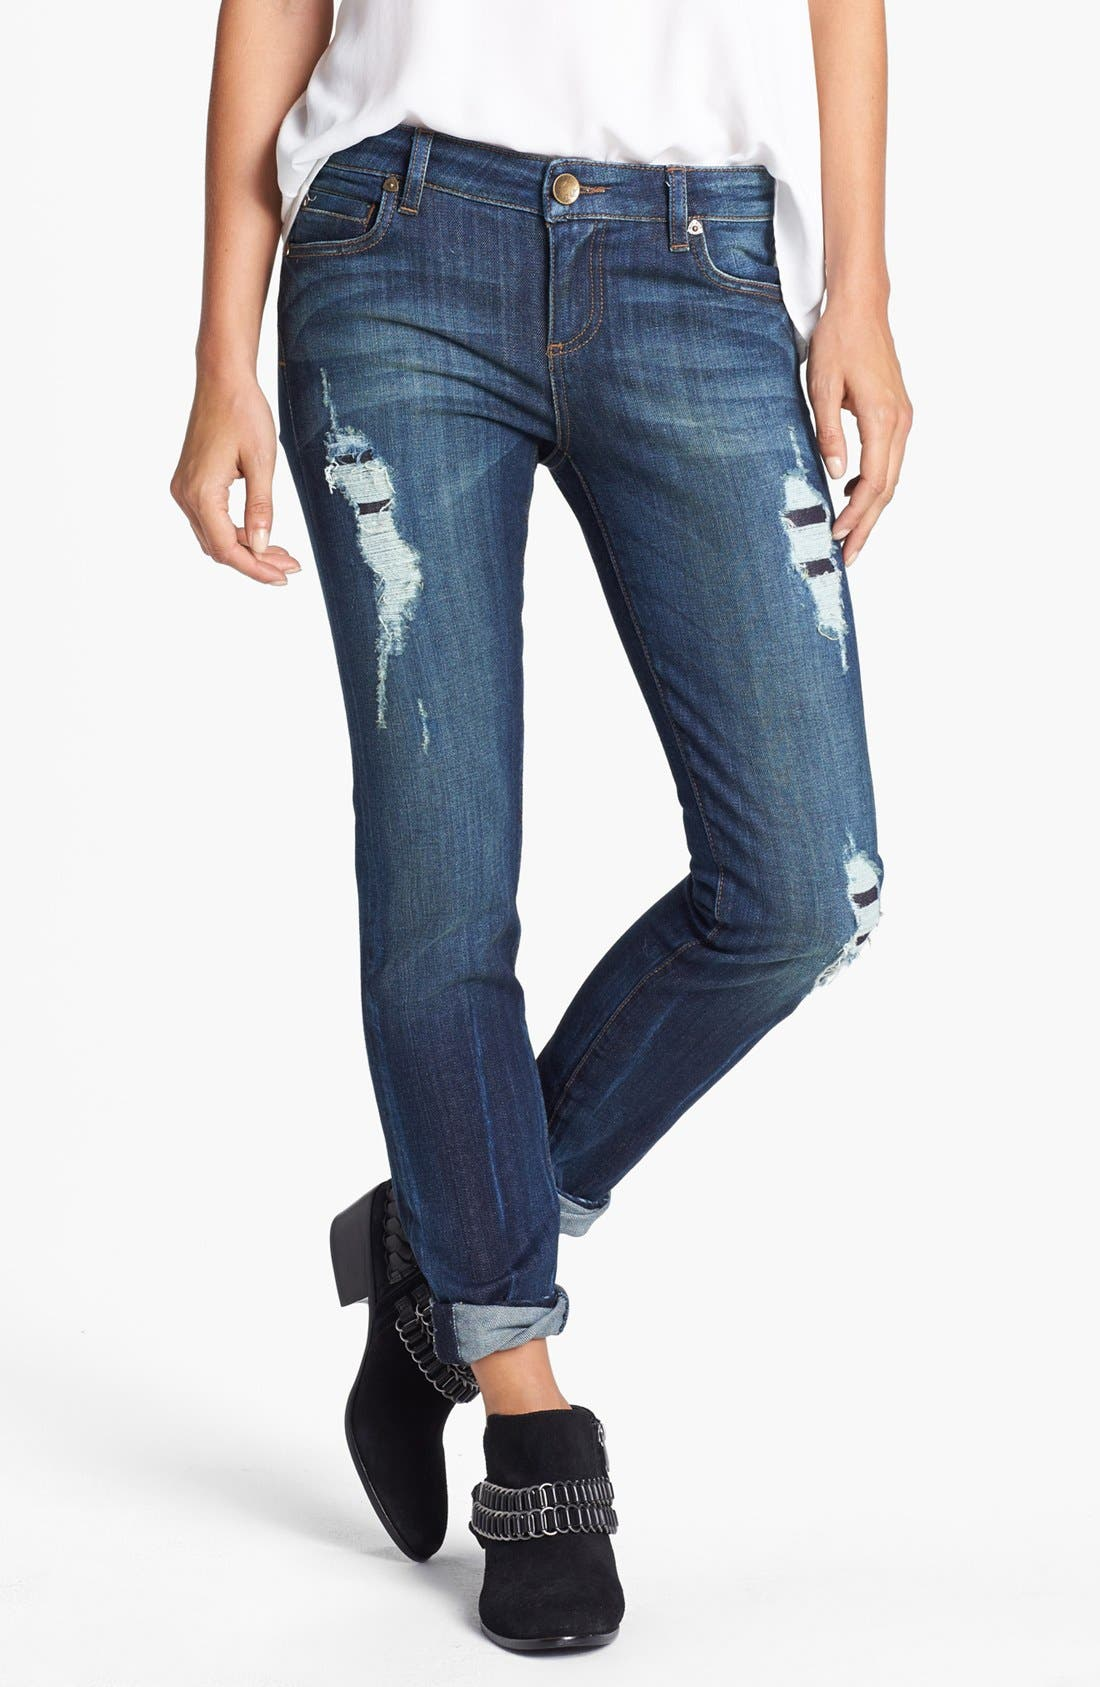 Alternate Image 1 Selected - KUT from the Kloth 'Mia' Destructed Skinny Jeans (Admissible)